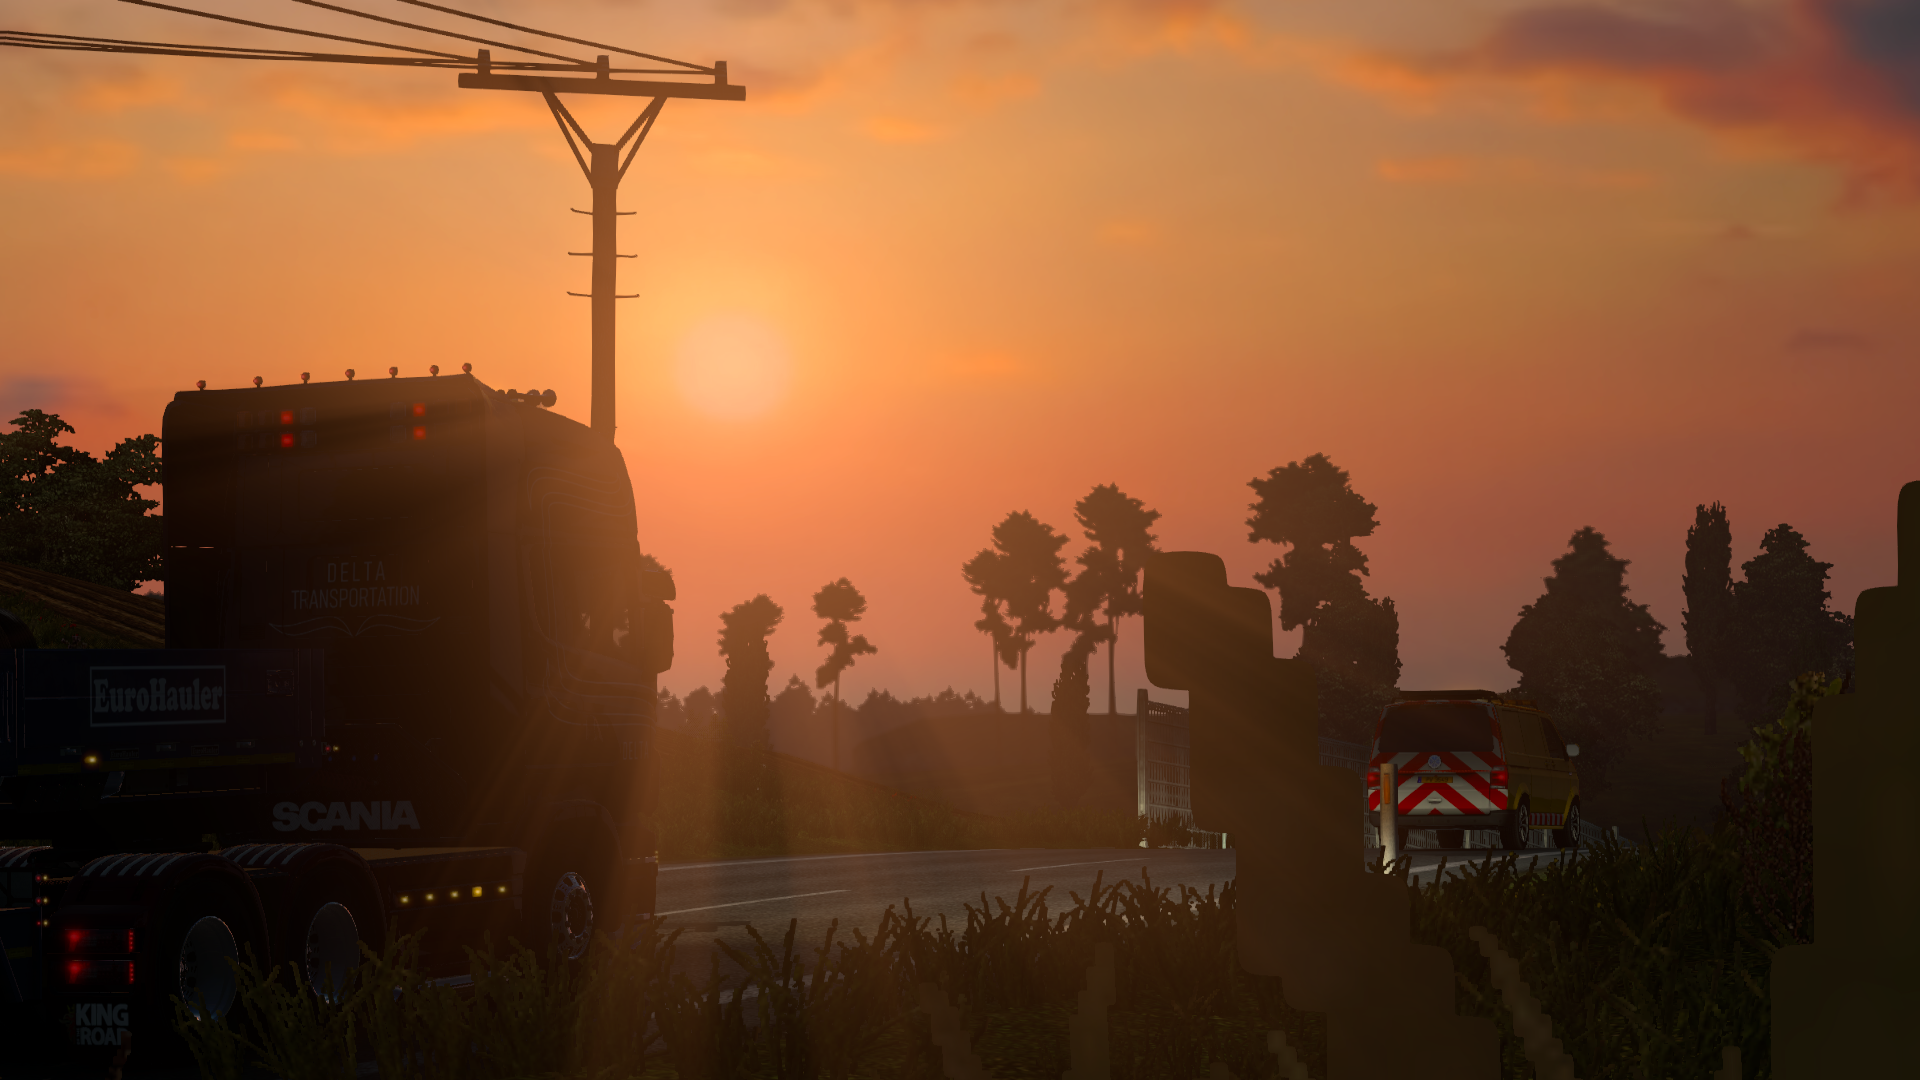 ets2_20190301_195825_00.png